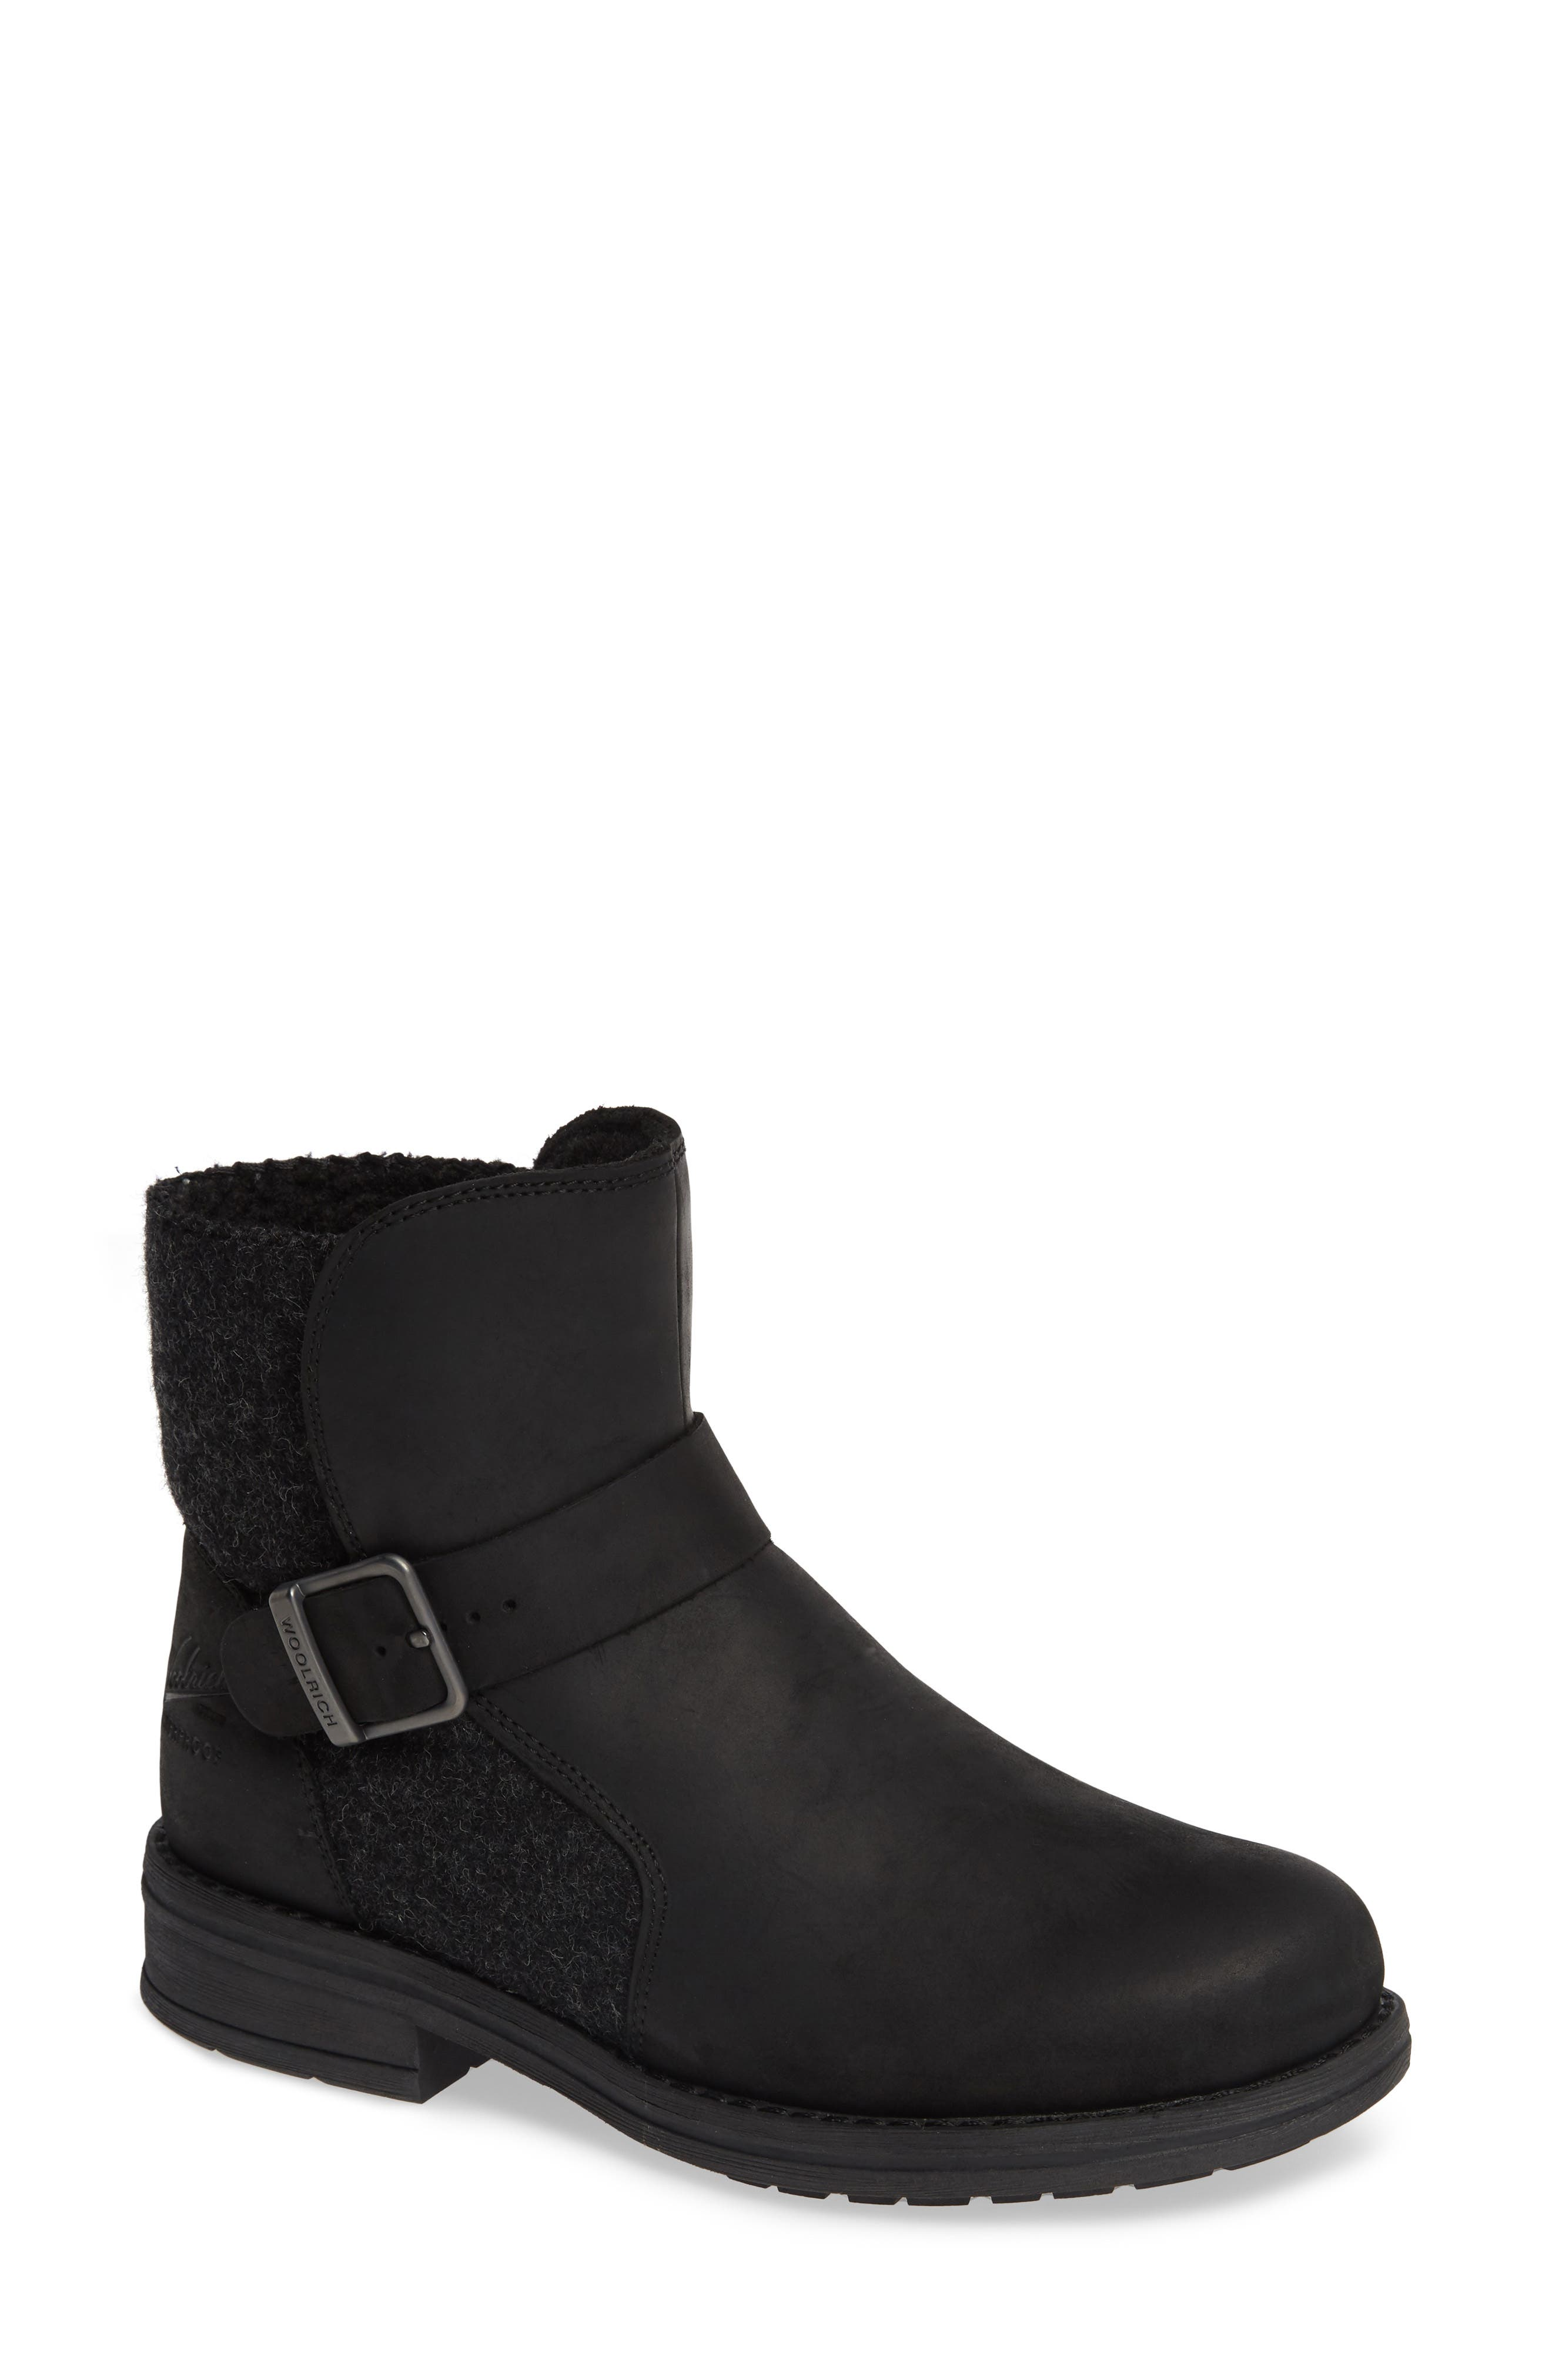 Pioneer Bootie,                         Main,                         color, BLACK LEATHER